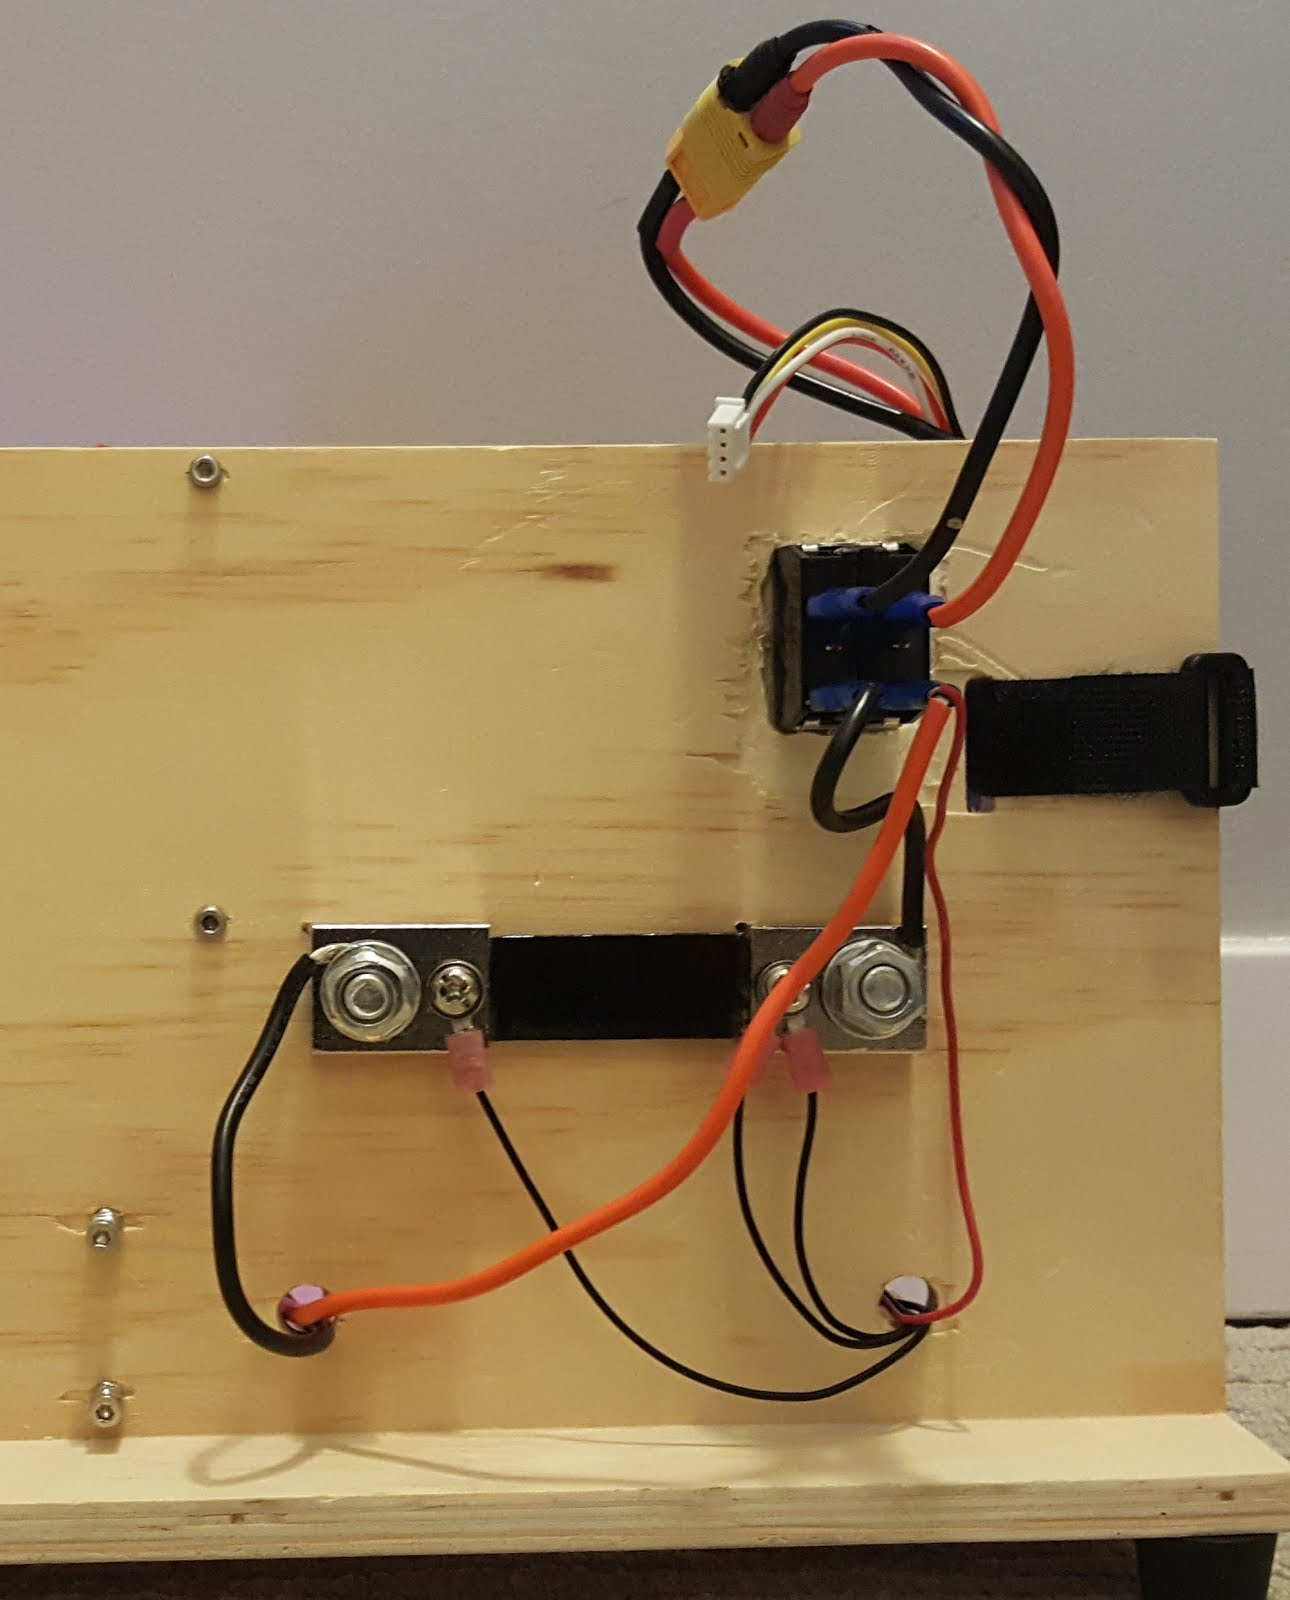 EE Projects - Electrical Engineering Projects: Test Bench